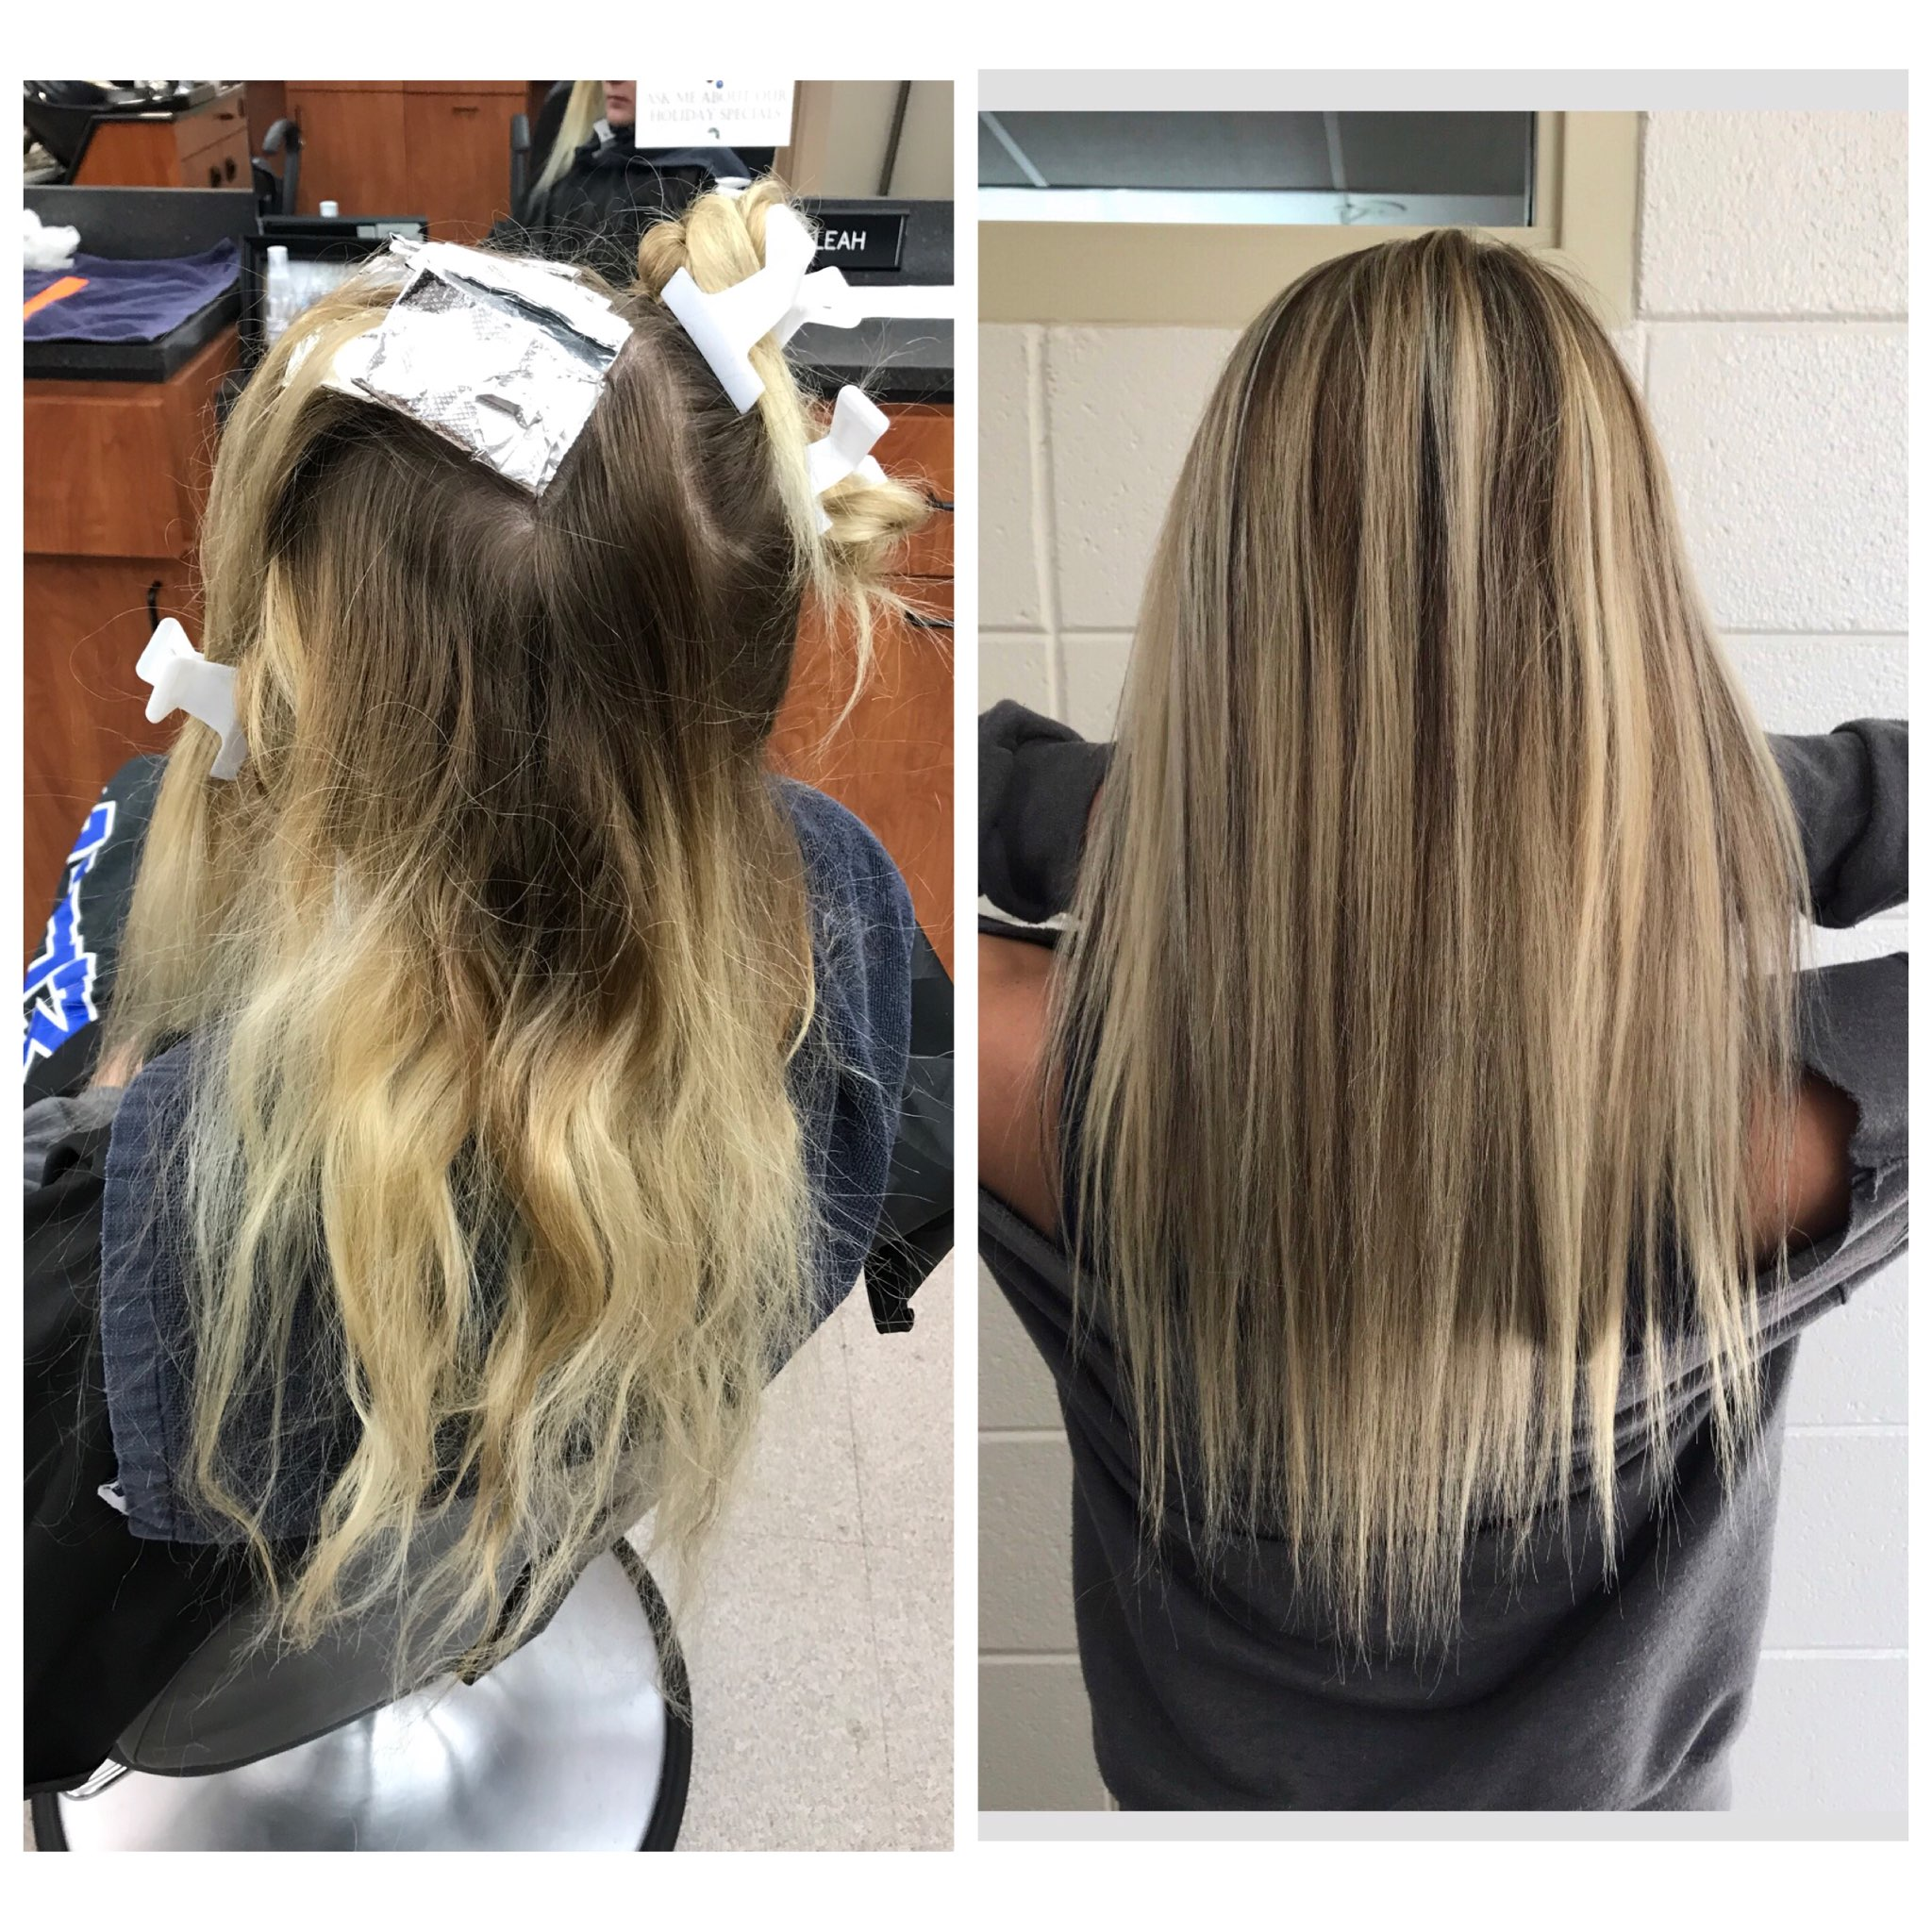 Cosmetology student before and after photo of client at Techniques Salon and Spa